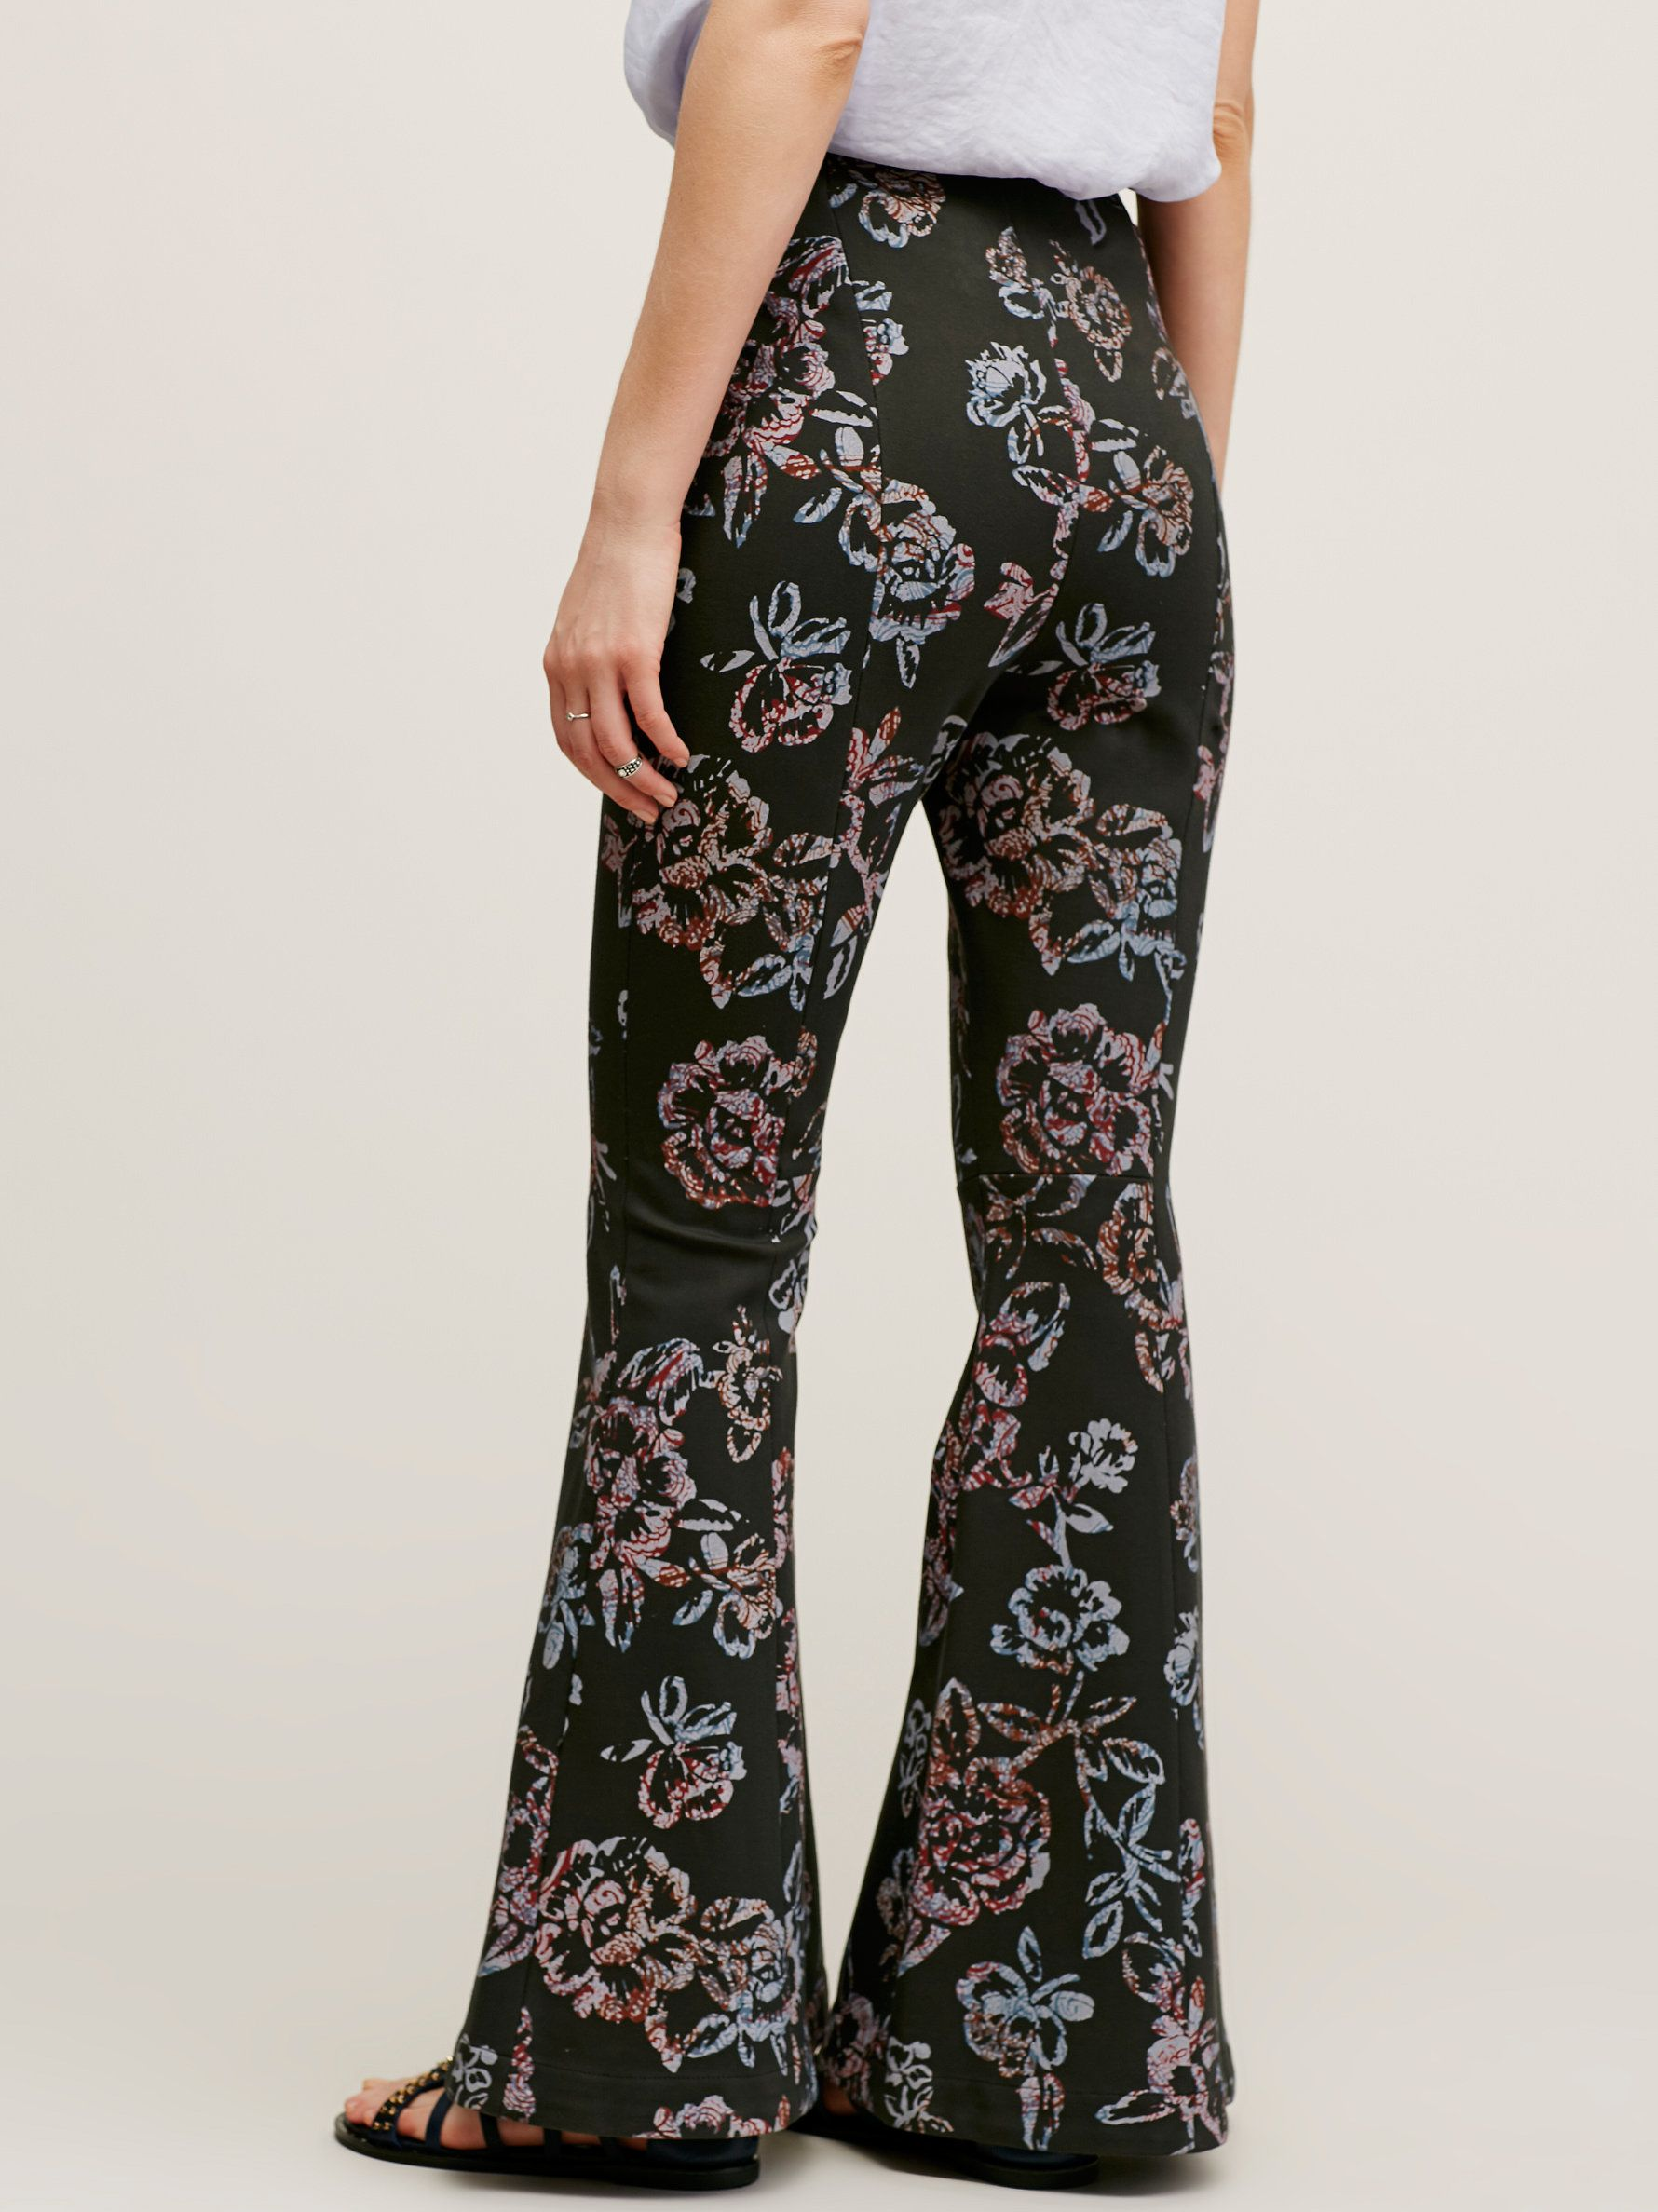 f90db3cf4a6 Image result for Free People floral bell bottom pants | Visit ...